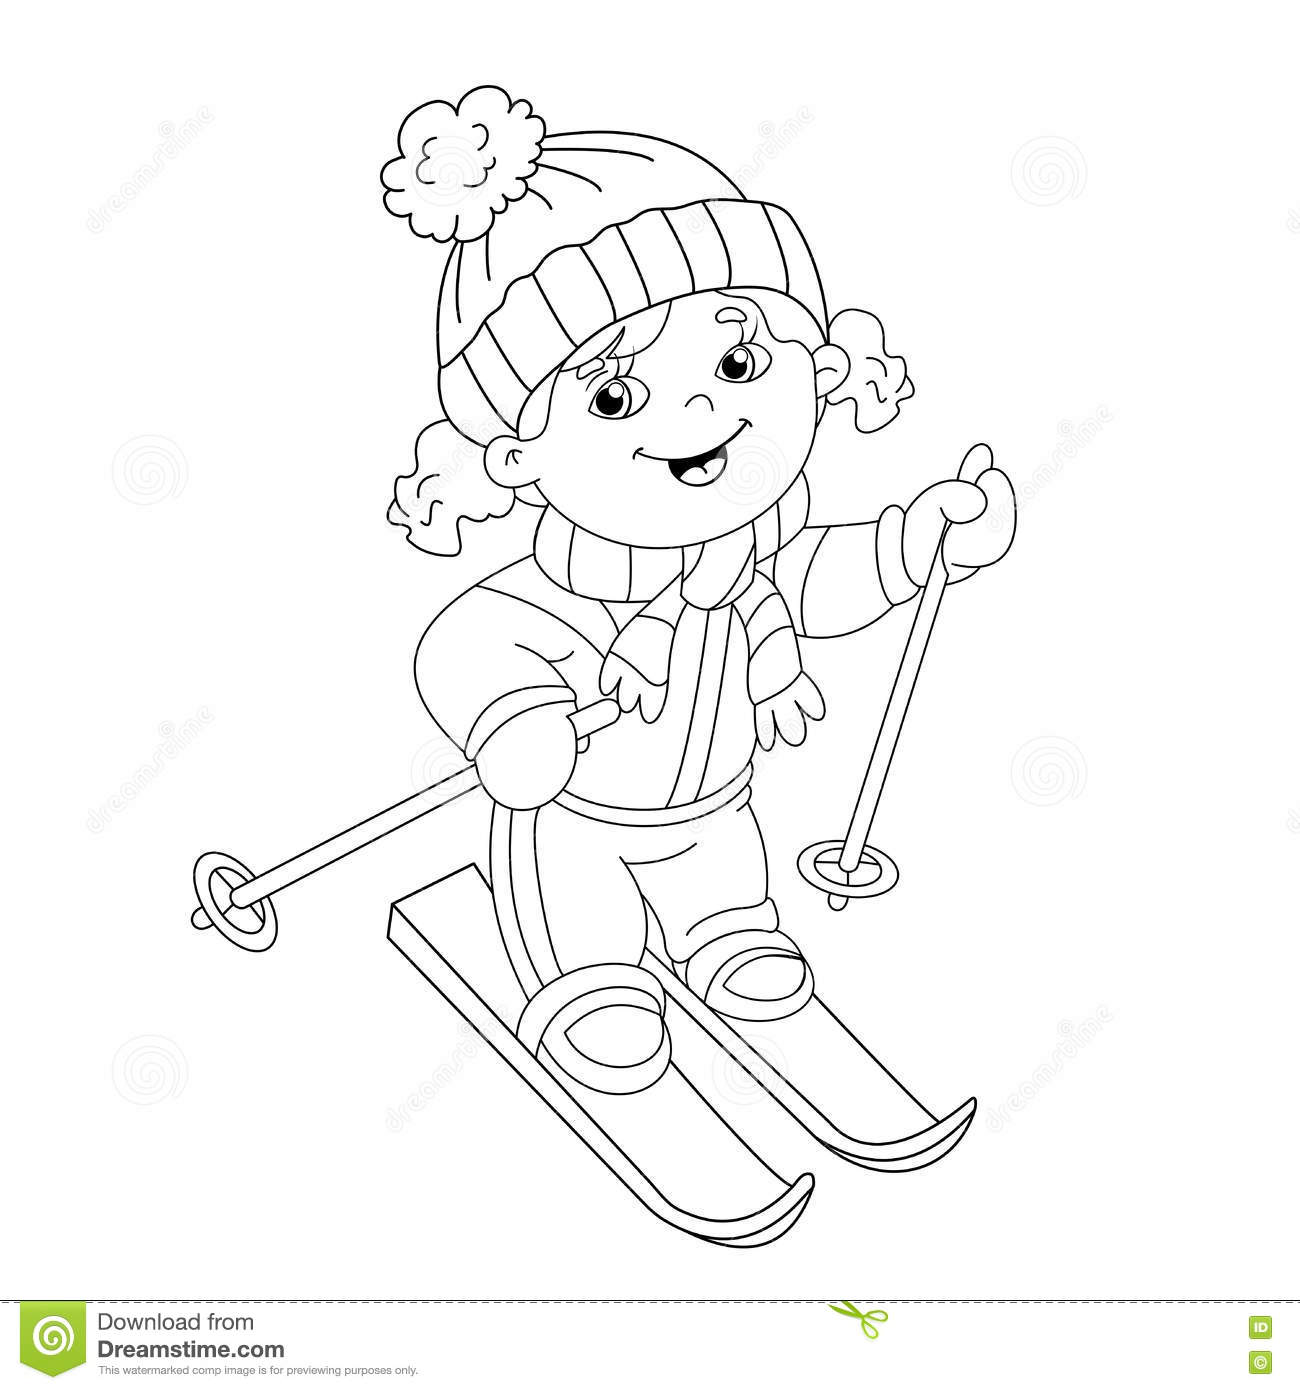 sports coloring pages for girls - photo#33